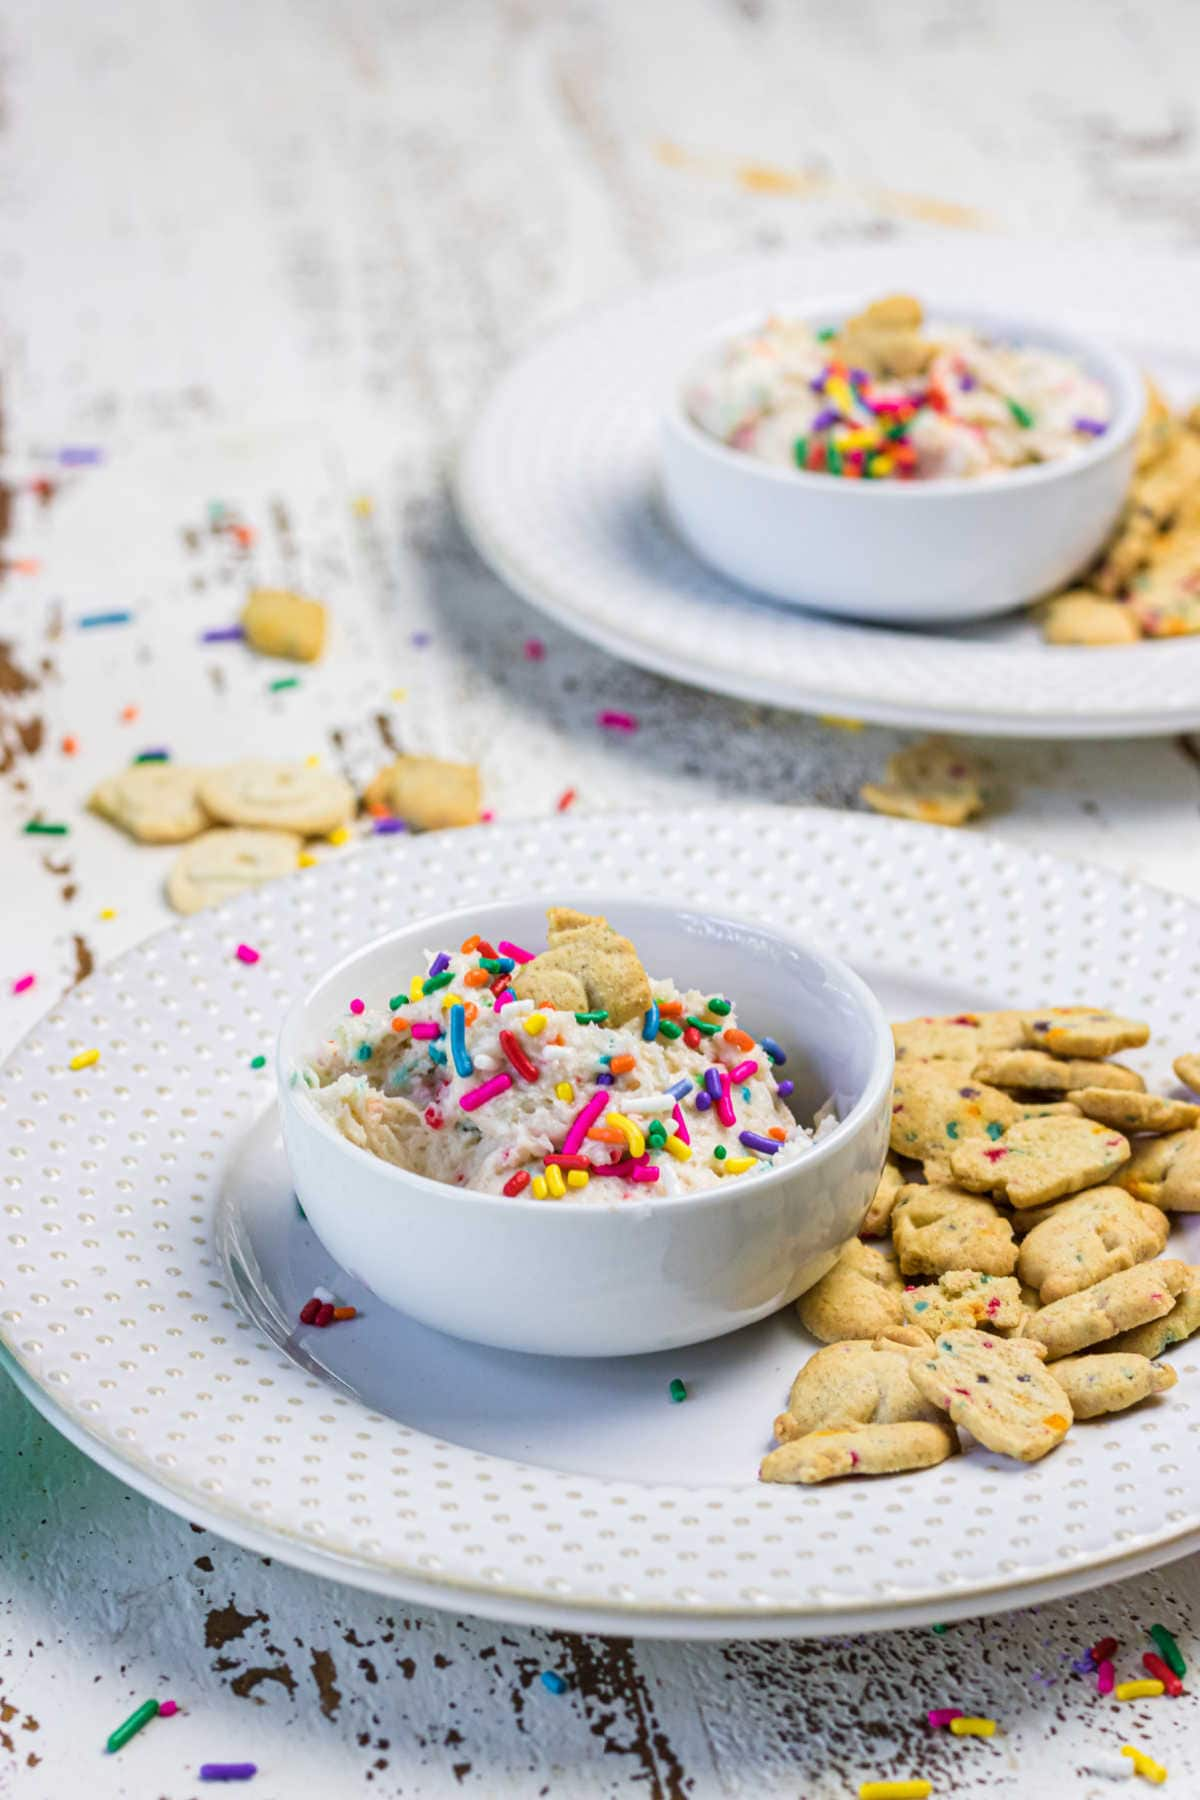 Decorative image - finished dip in small bowls with cookies nearby.